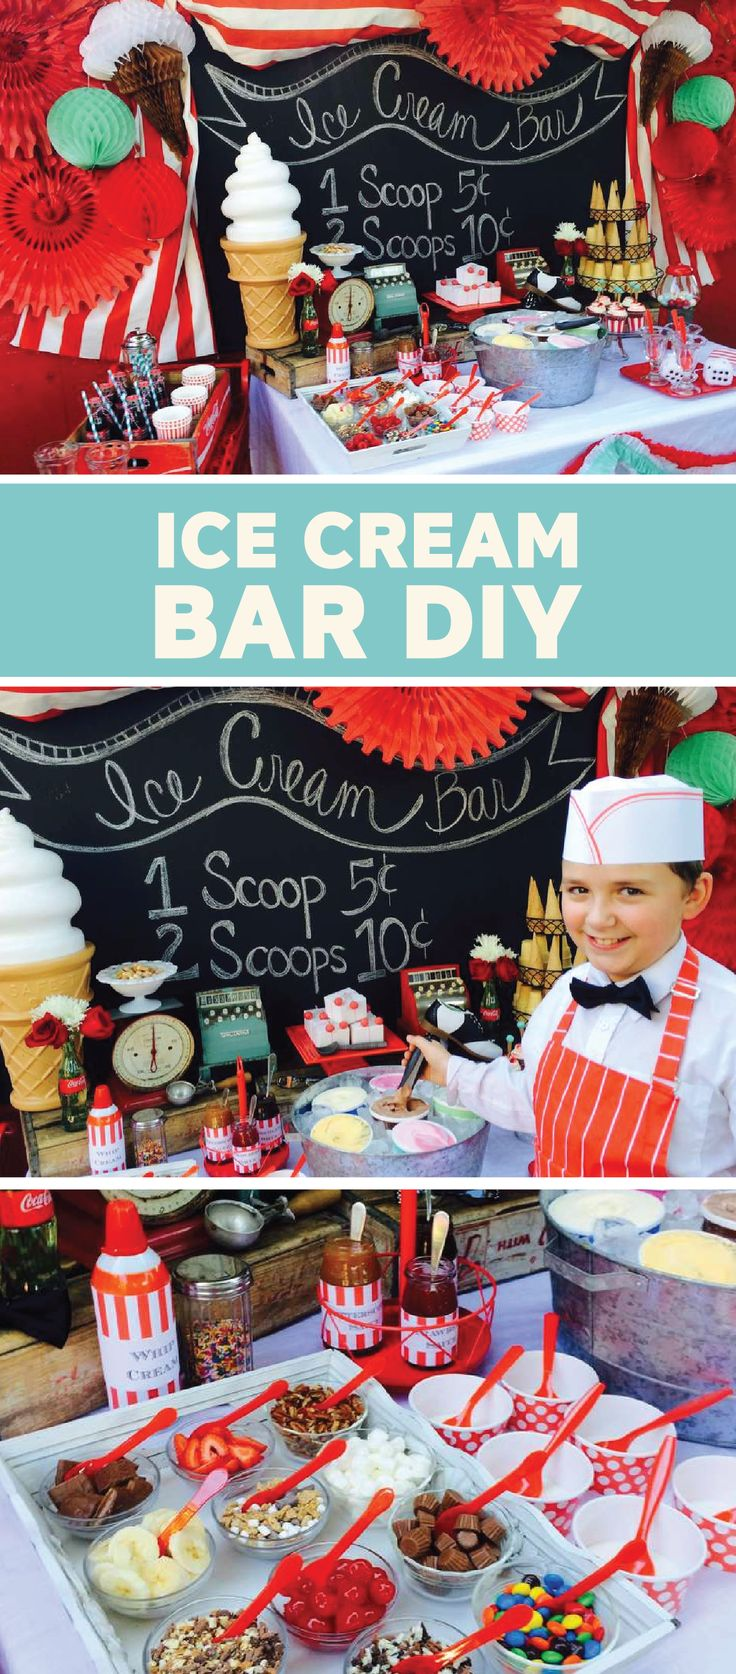 There ain't no party like an ice cream party—especially when you're serving up delicious scoops of Dreyer's Slow ChurnedⓇ ice cream with this old fashioned DIY ice cream bar. Use brightly colored streamers and a chalkboard sign to decorate your dessert table. Your guests will love how festive this ice cream bar is.